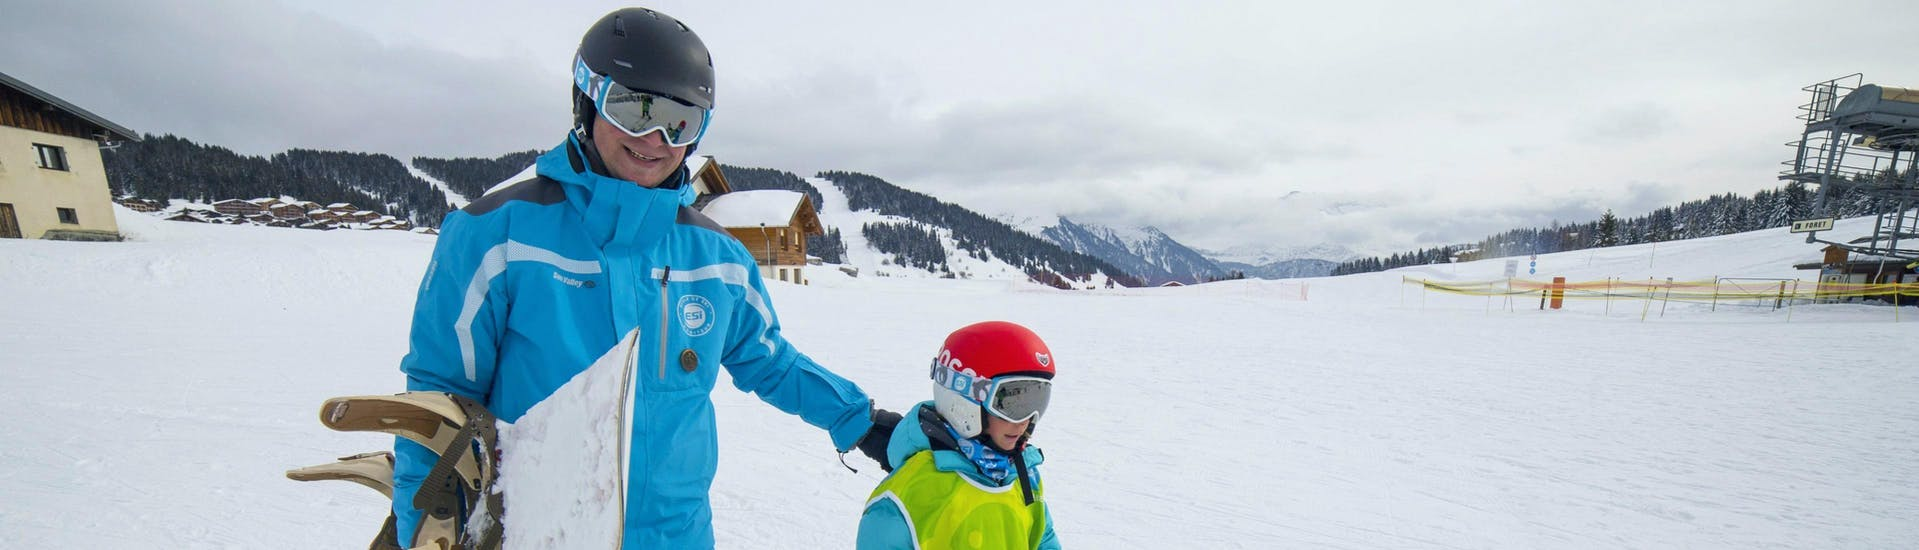 A snowboarder is walking besides their snowboard instructor from the ski school ESI Font Romeu at the bottom of the snowy slopes during their Snowboarding Lessons for Kids & Adults - Holiday.